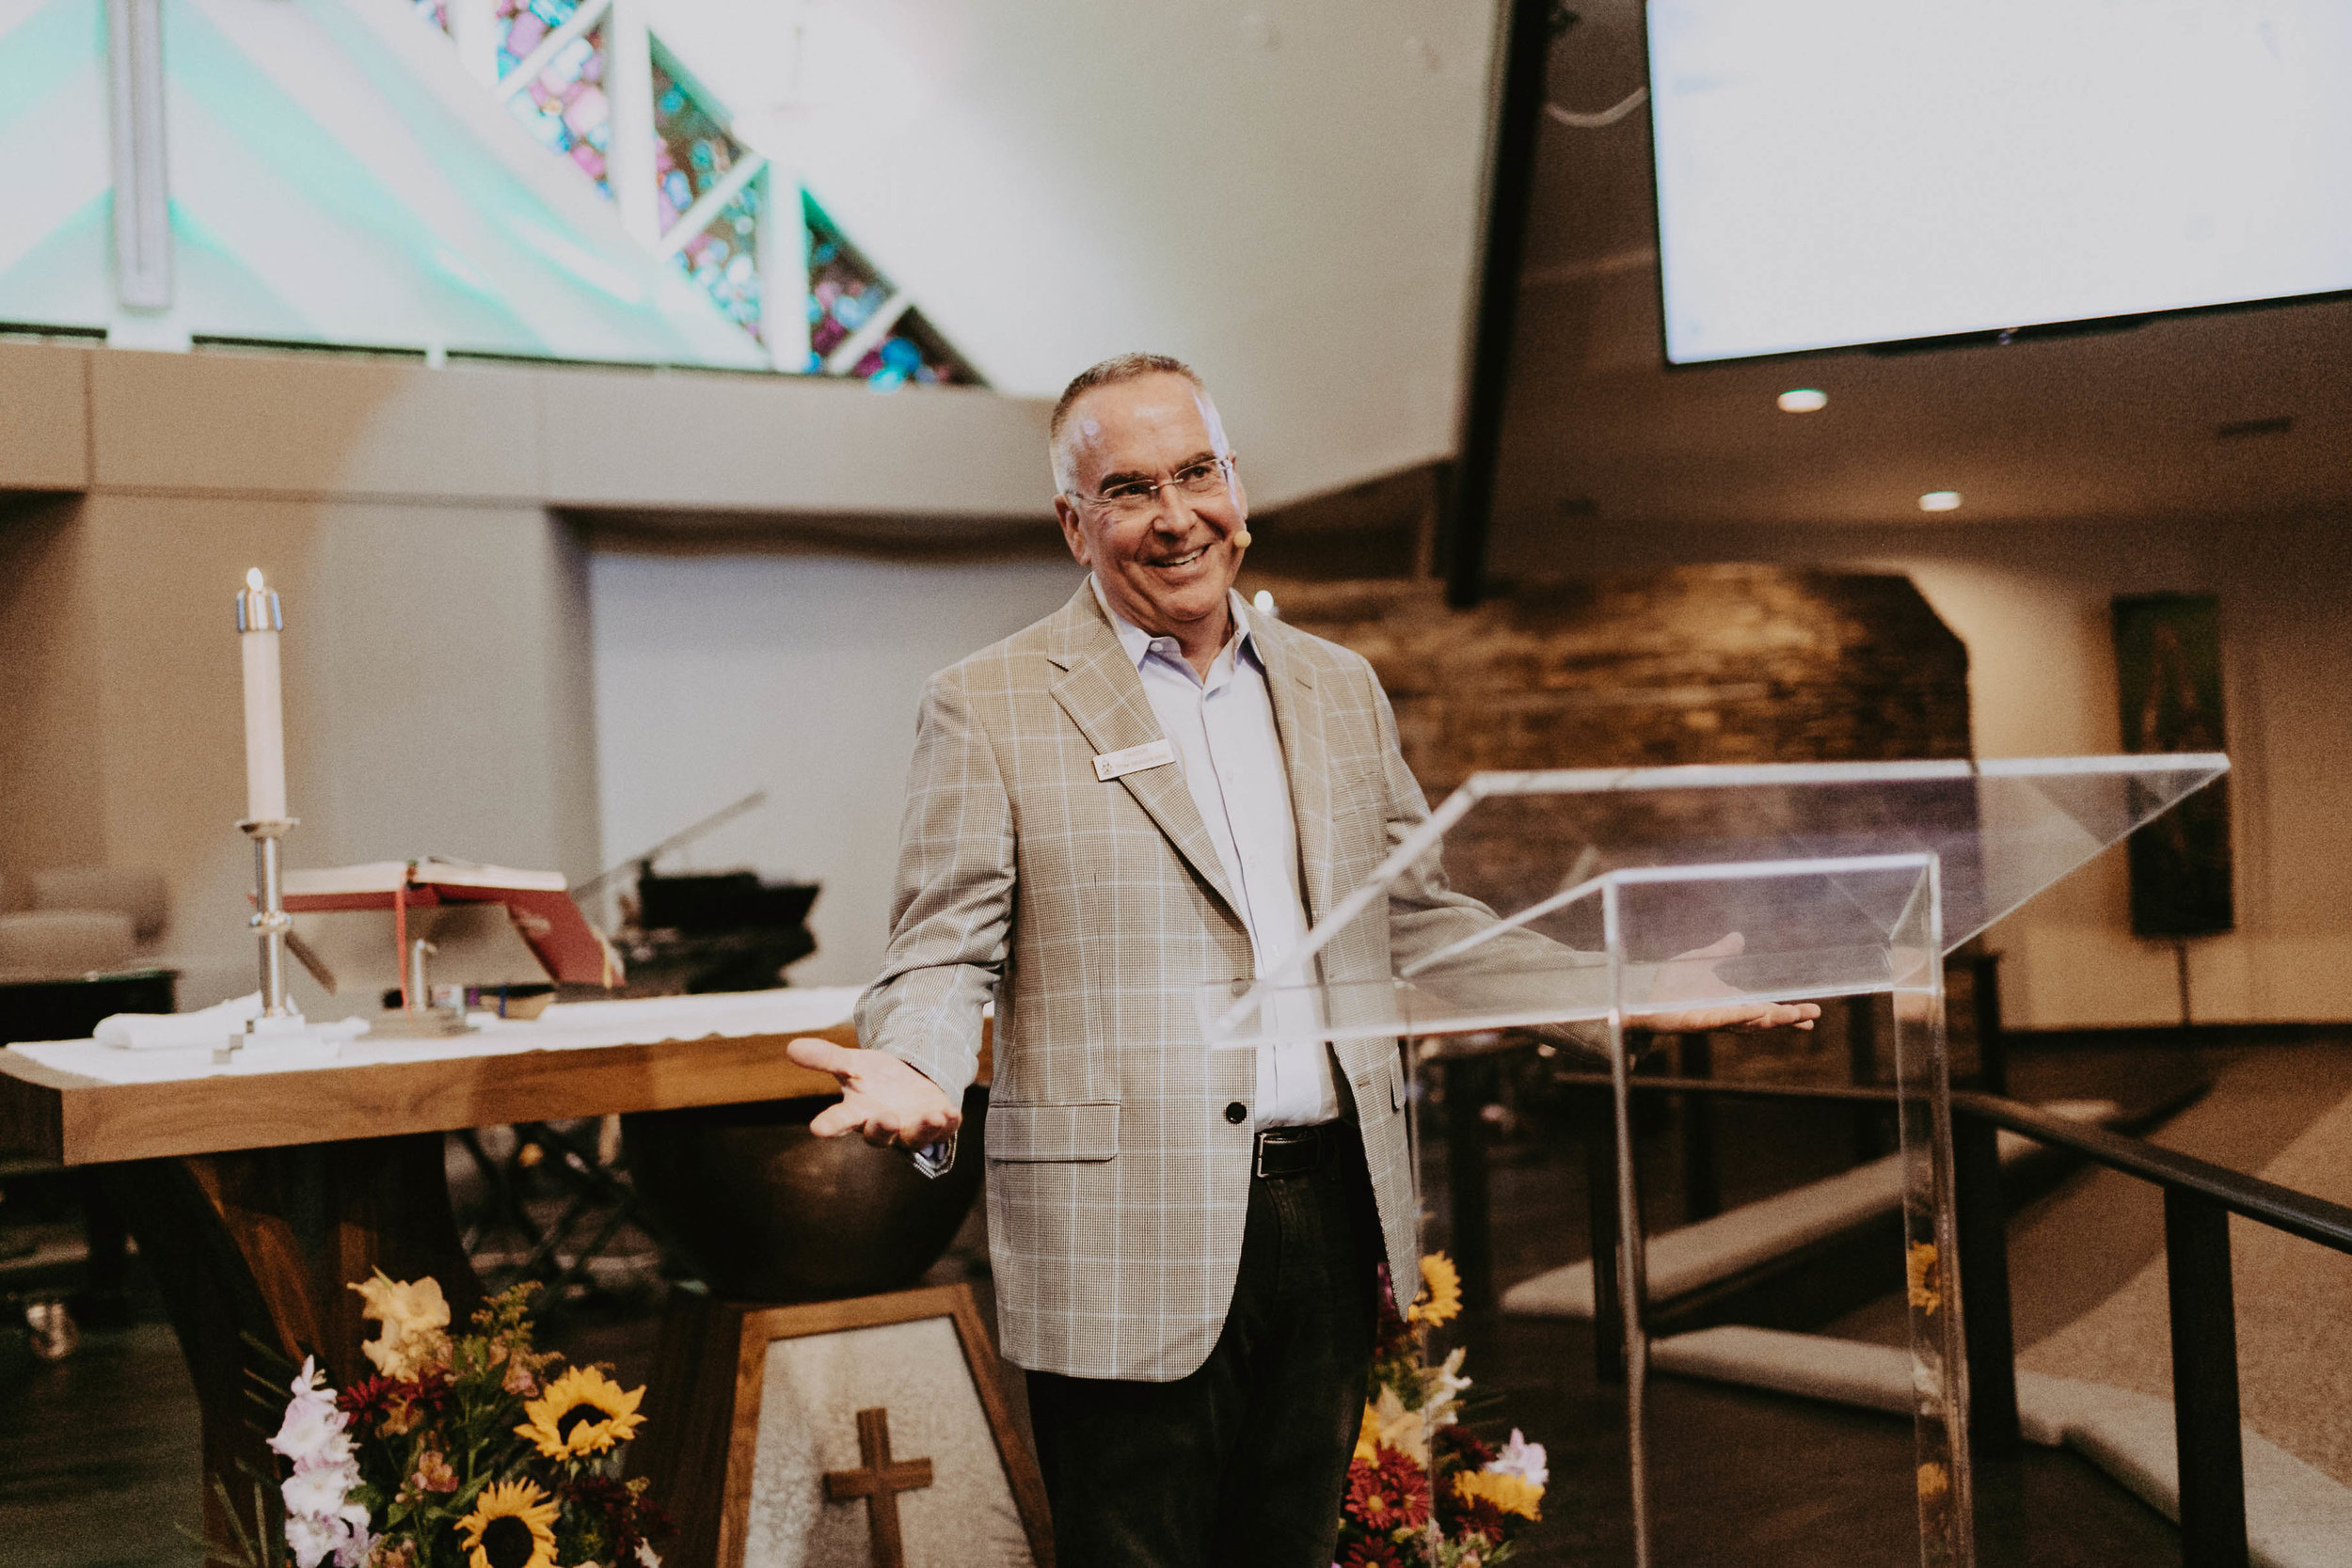 Pastor Tom Brashears, senior pastor at Good Shepherd Lutheran Church in Irvine, Southern California, delivered a sermon which helped Madison learned to forgive.